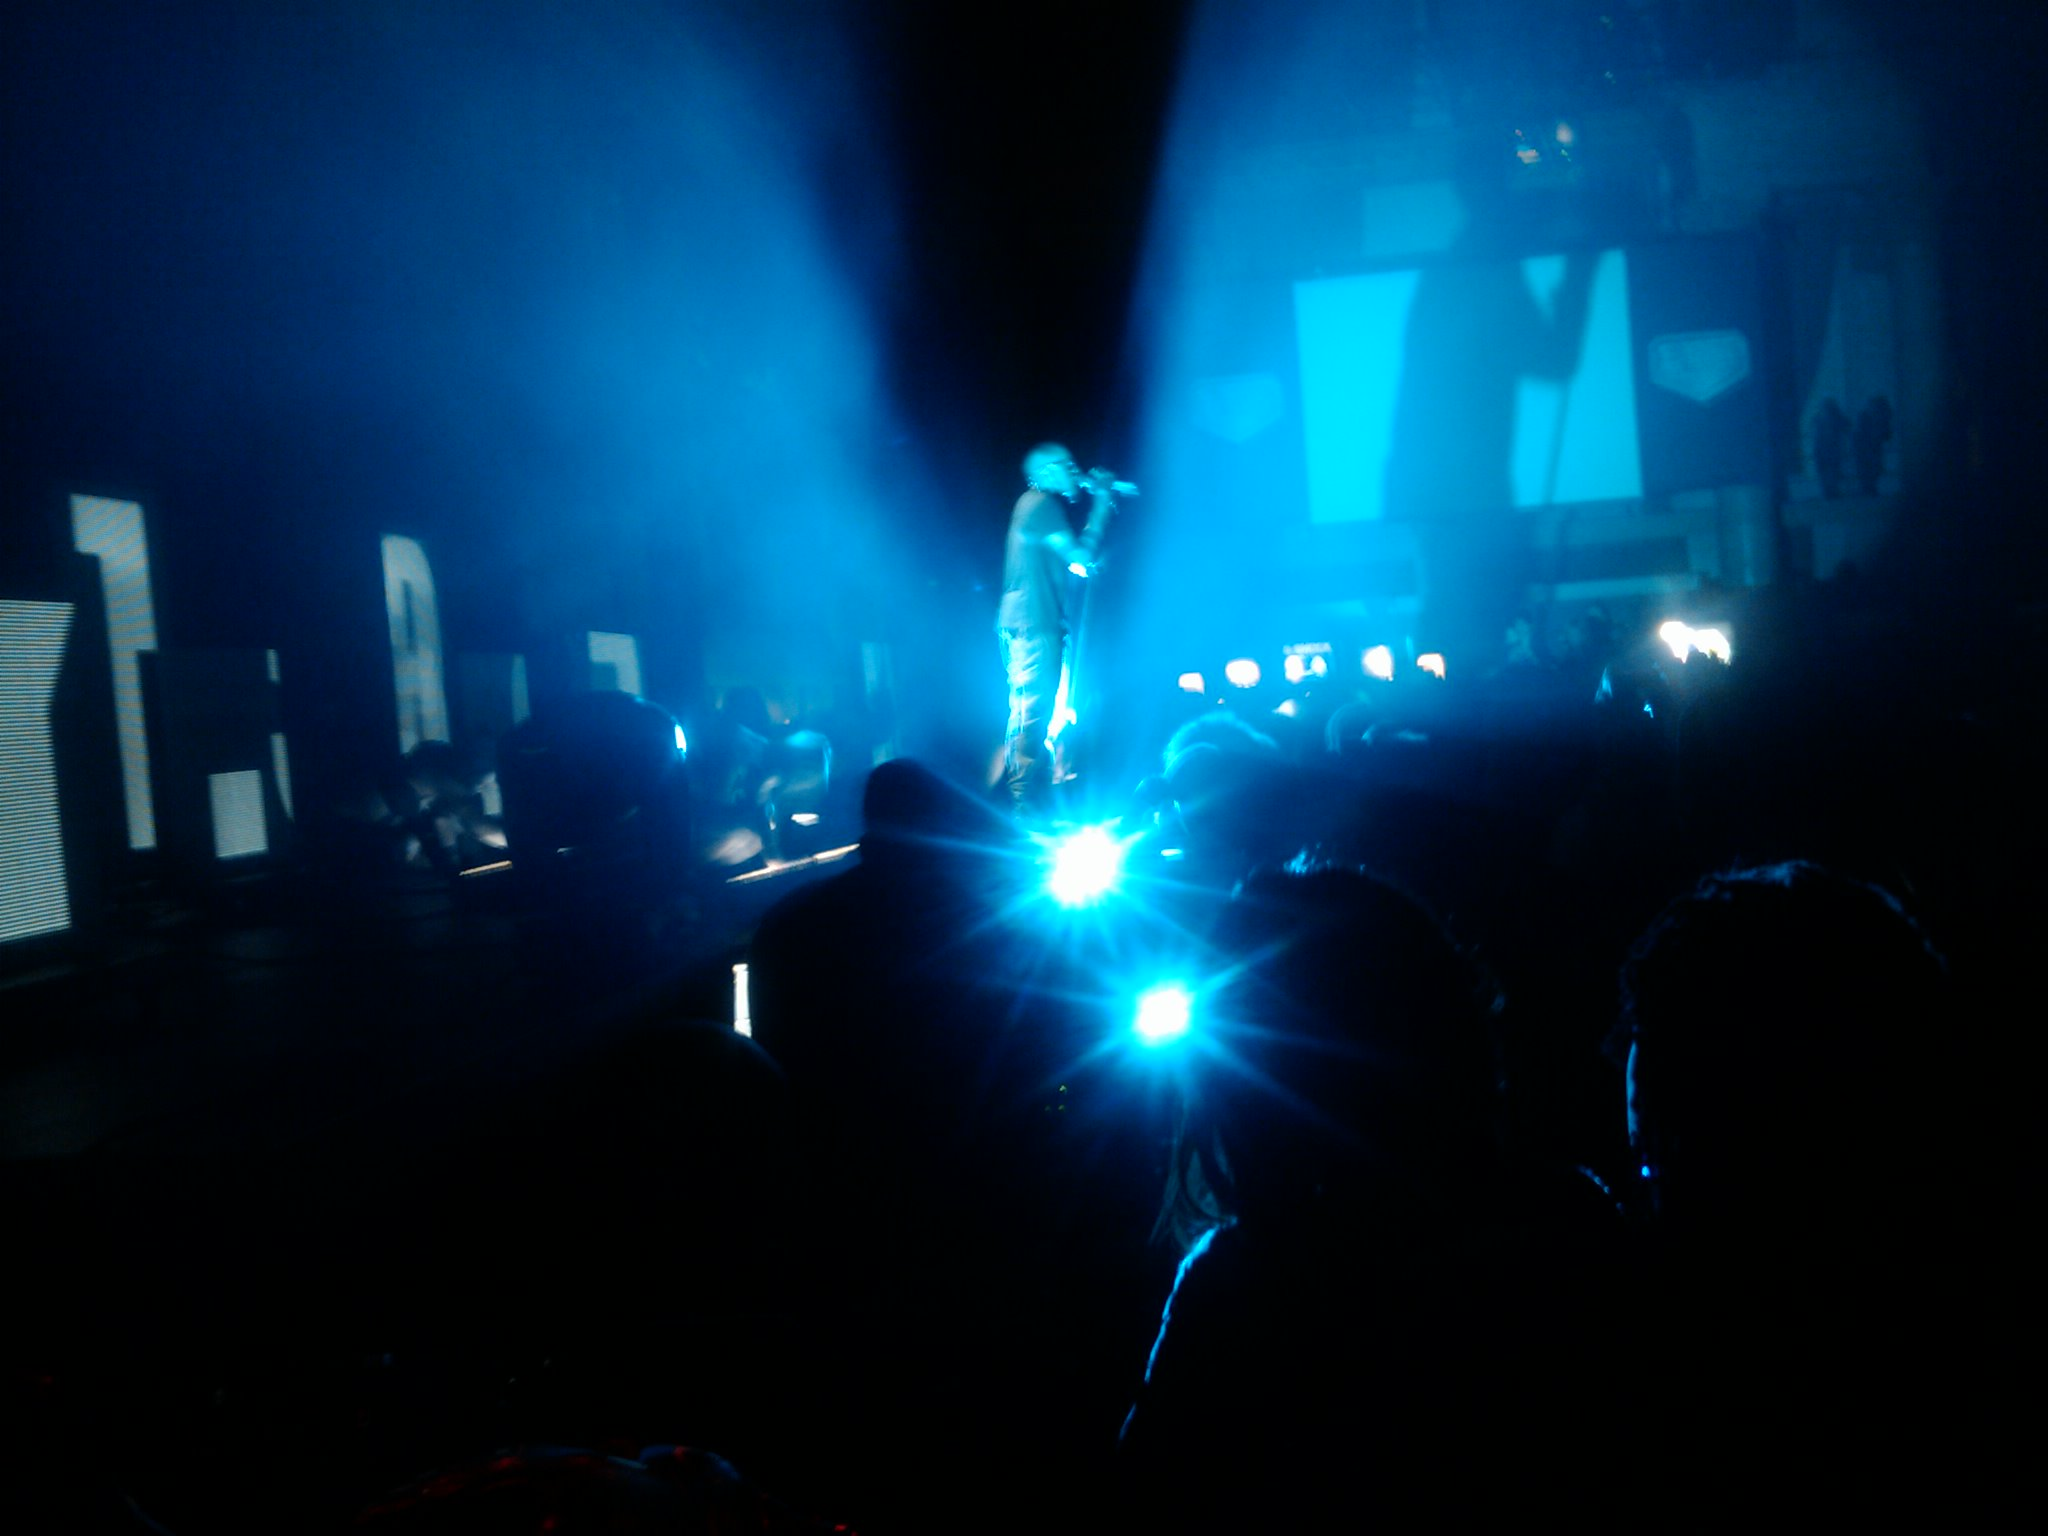 Kanye performing at G-Shock event